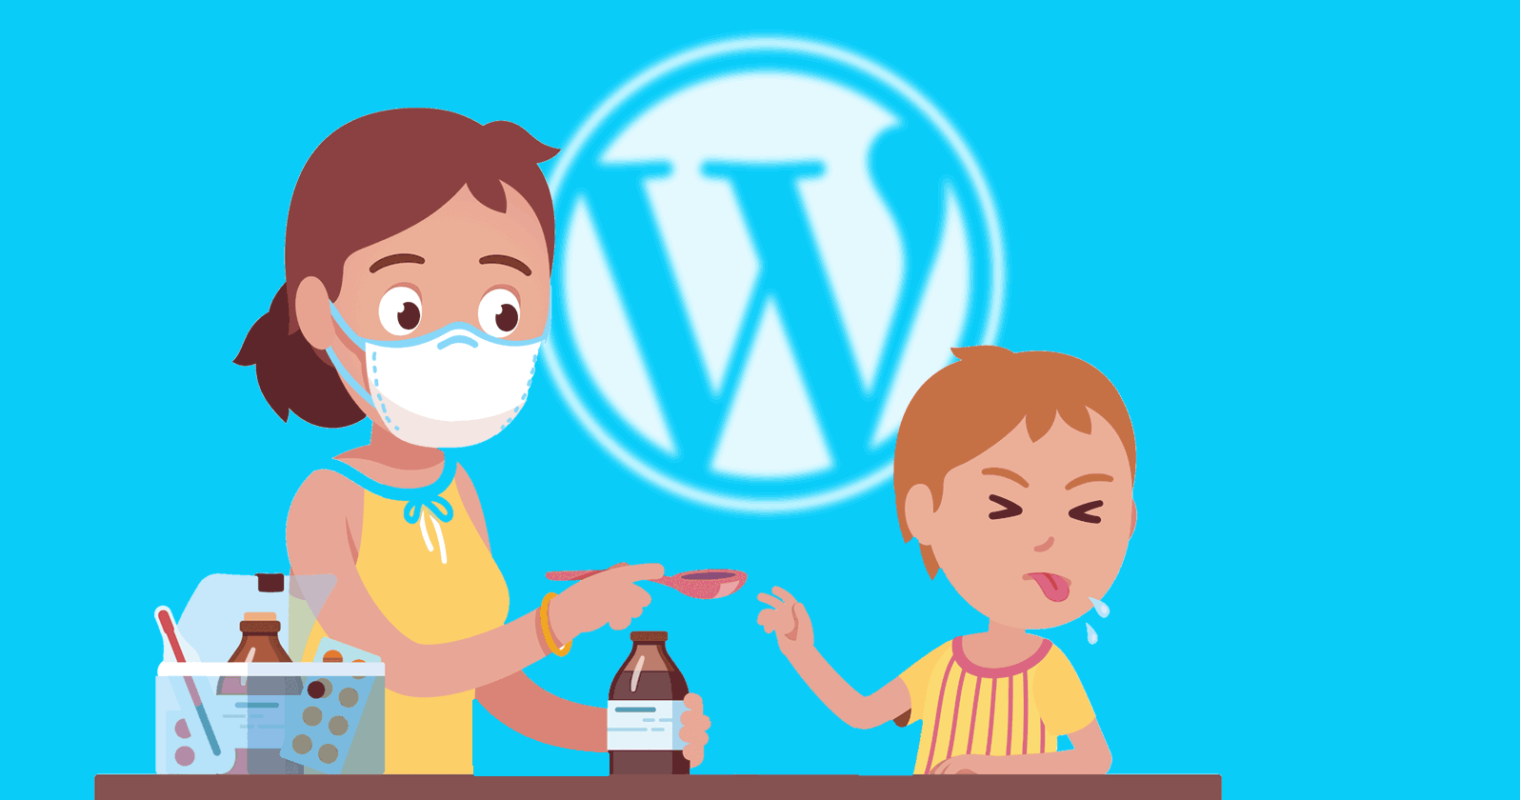 WordPress 5.5.1 Fixes Millions of Broken Sites